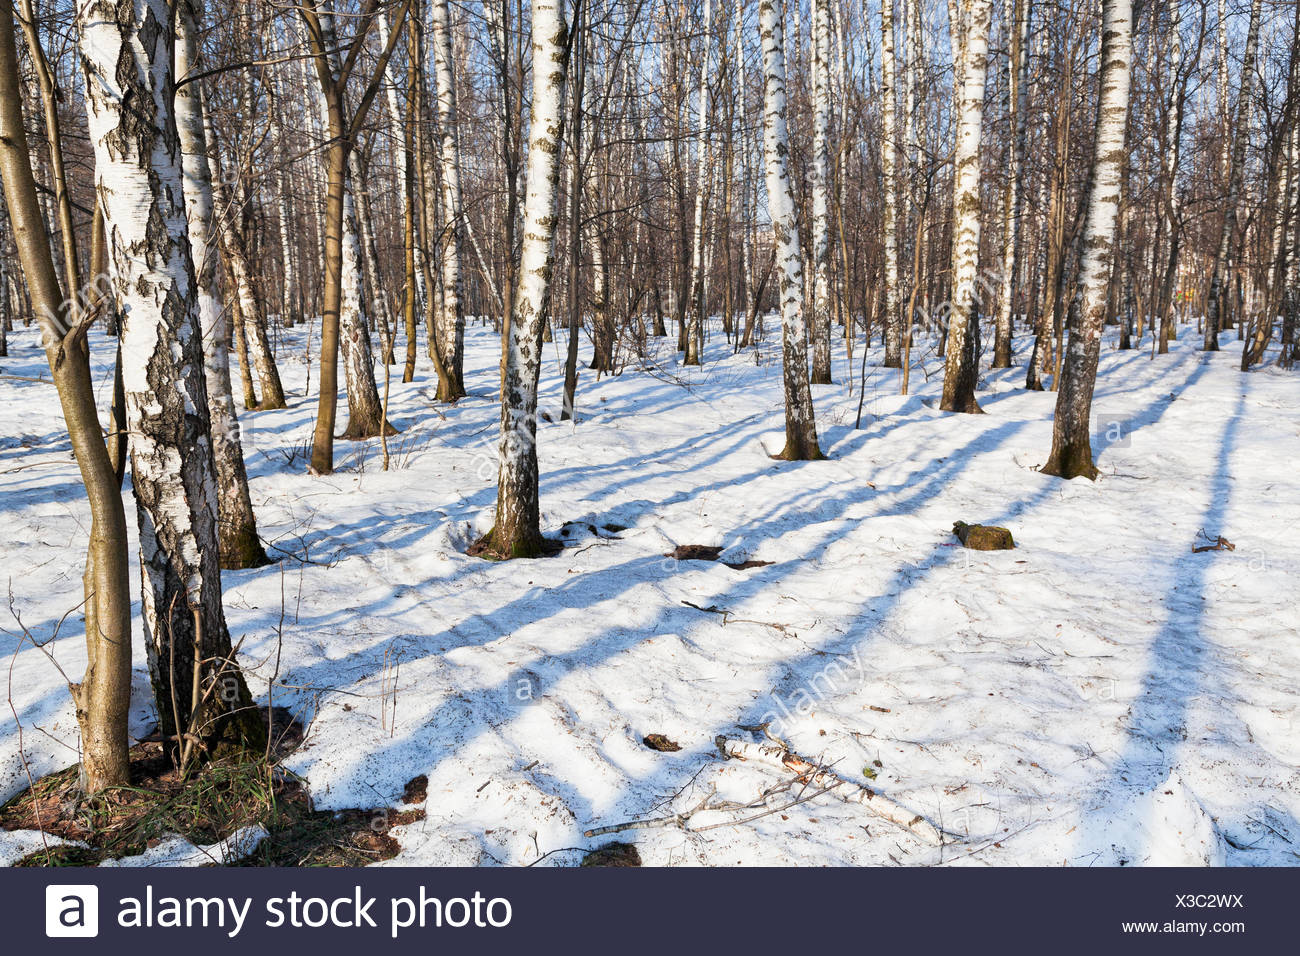 tree park wood cold trunk snow coke cocaine material drug anaesthetic addictive drug spring bouncing bounces hop skipping - Stock Image